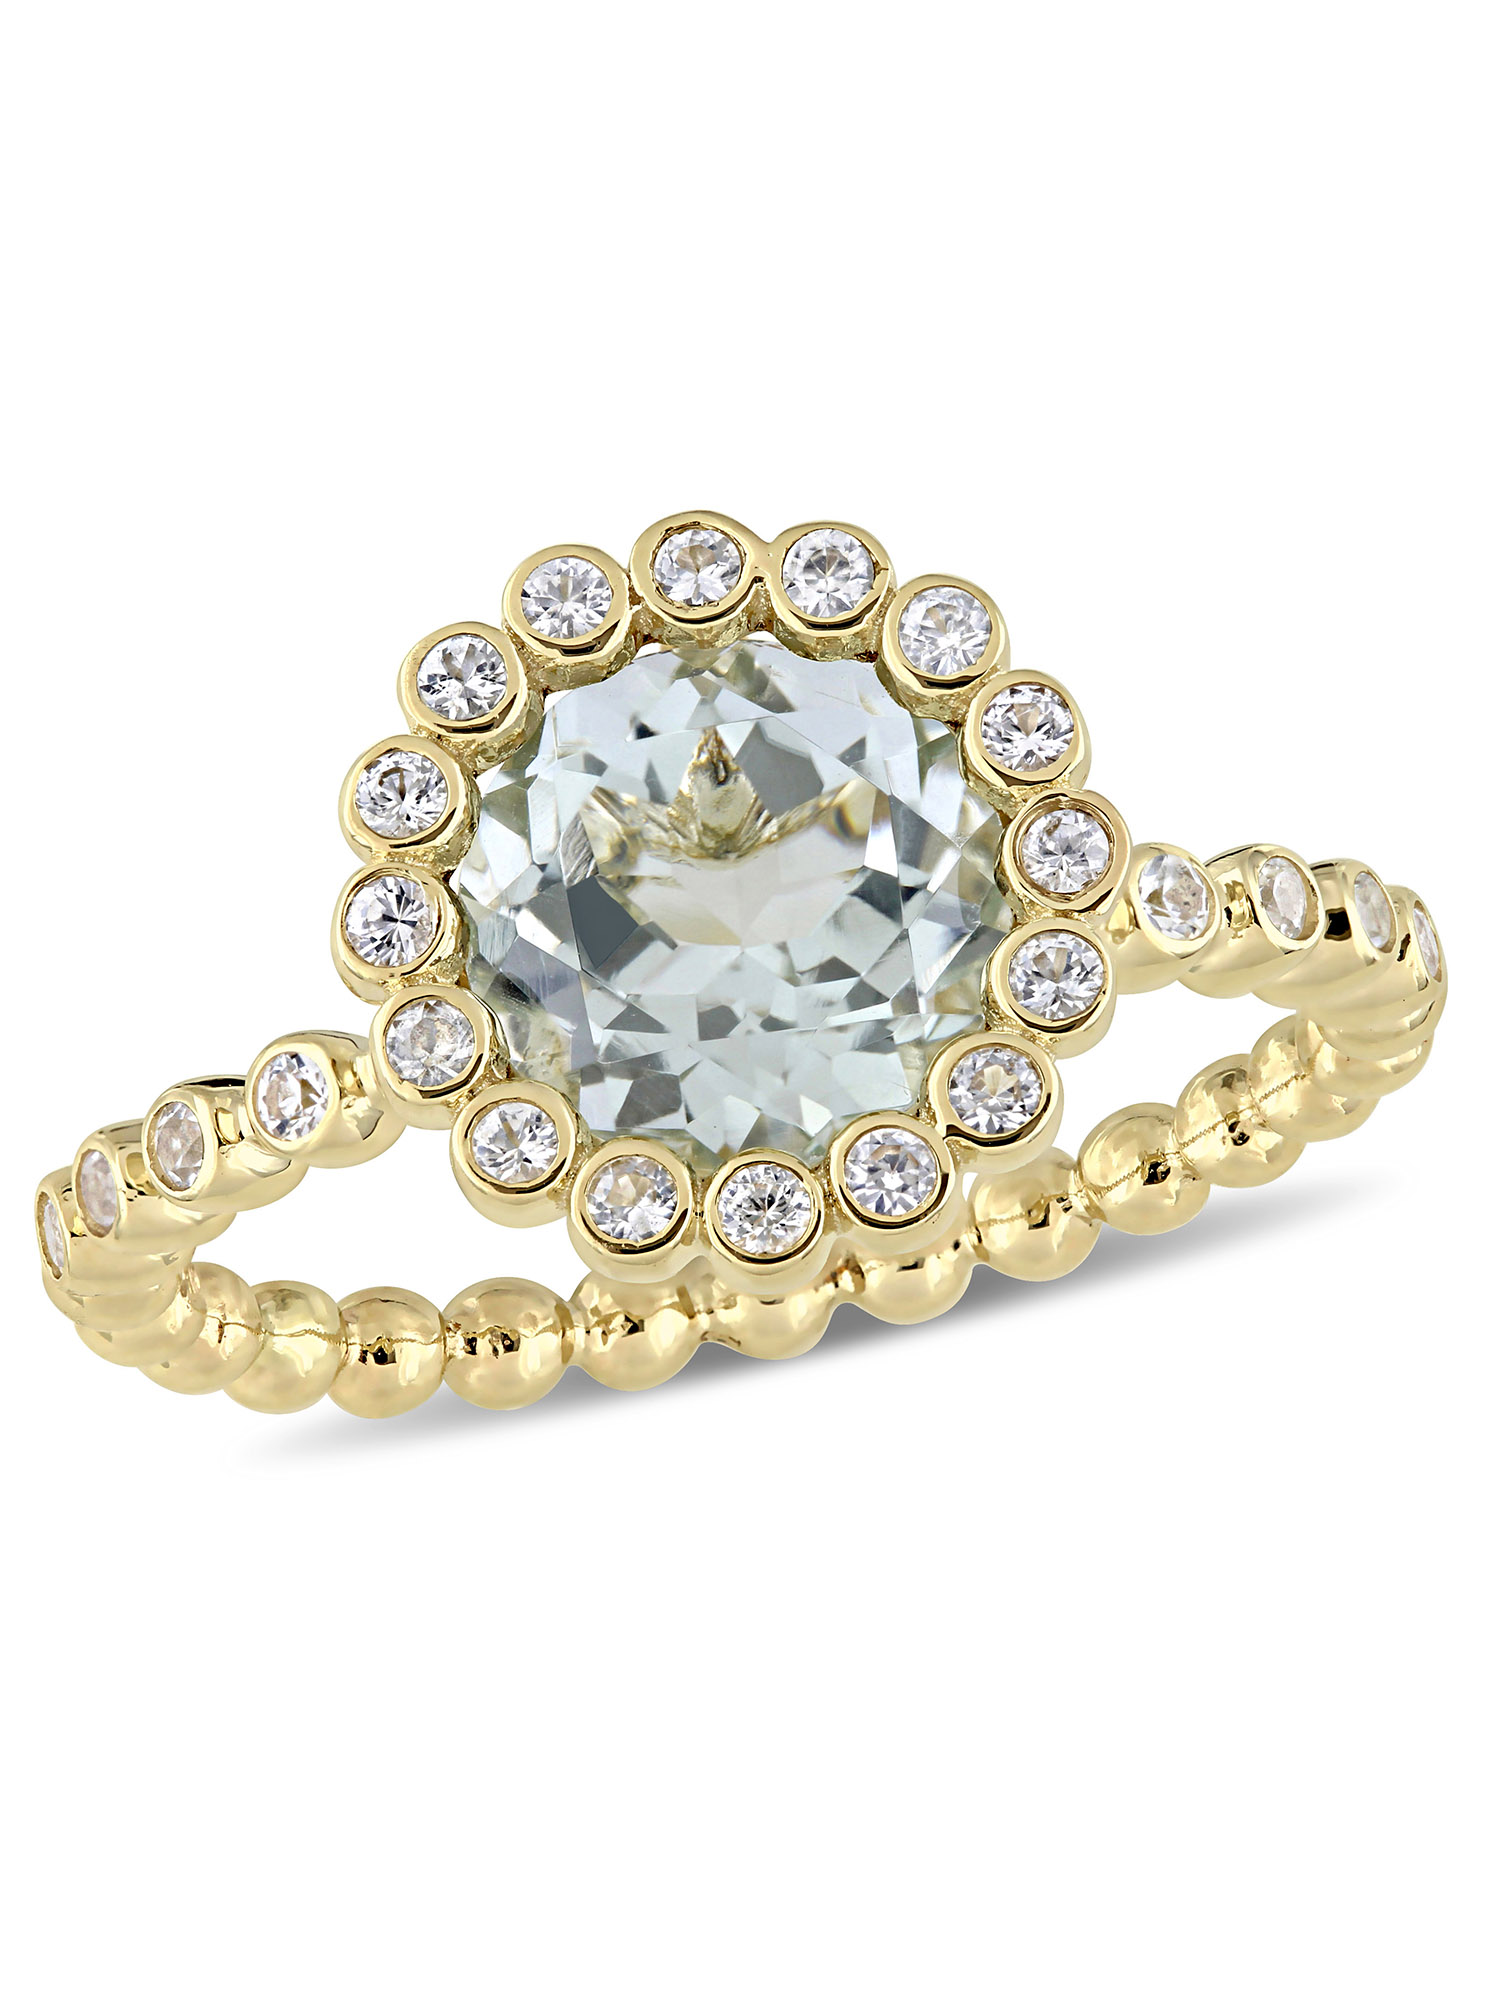 Tangelo 2 Carat T.G.W. Green Amethyst and White Sapphire 10kt Yellow Gold Halo Engagement Ring